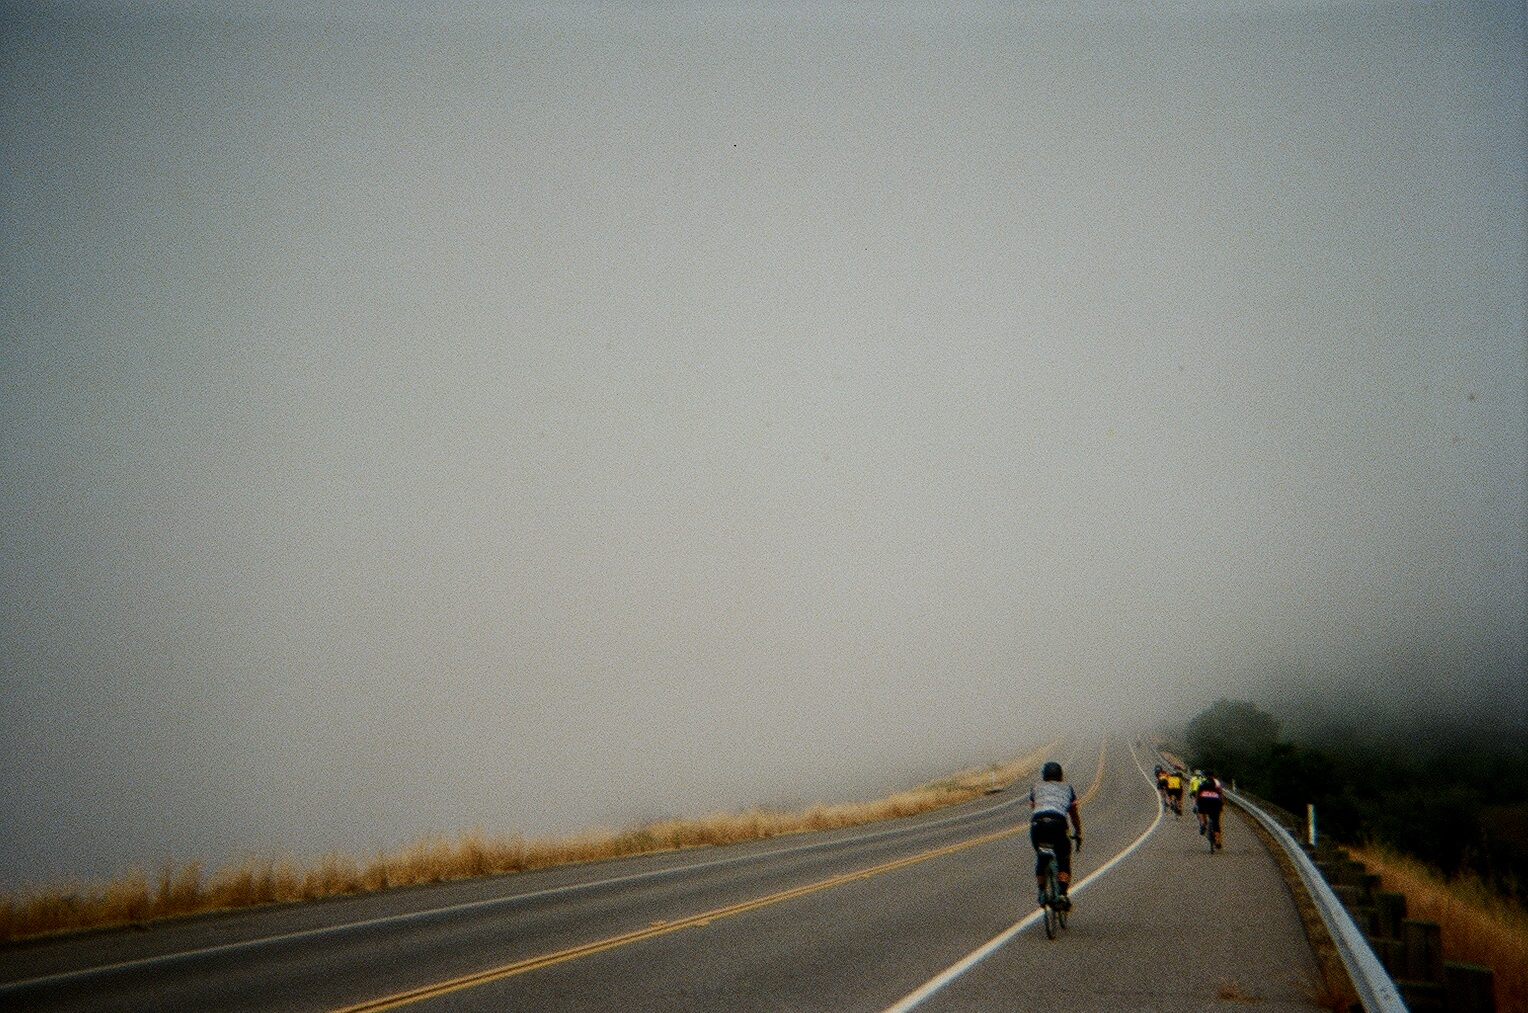 Somewhere in the foggy rolling hills of the Northern California coast